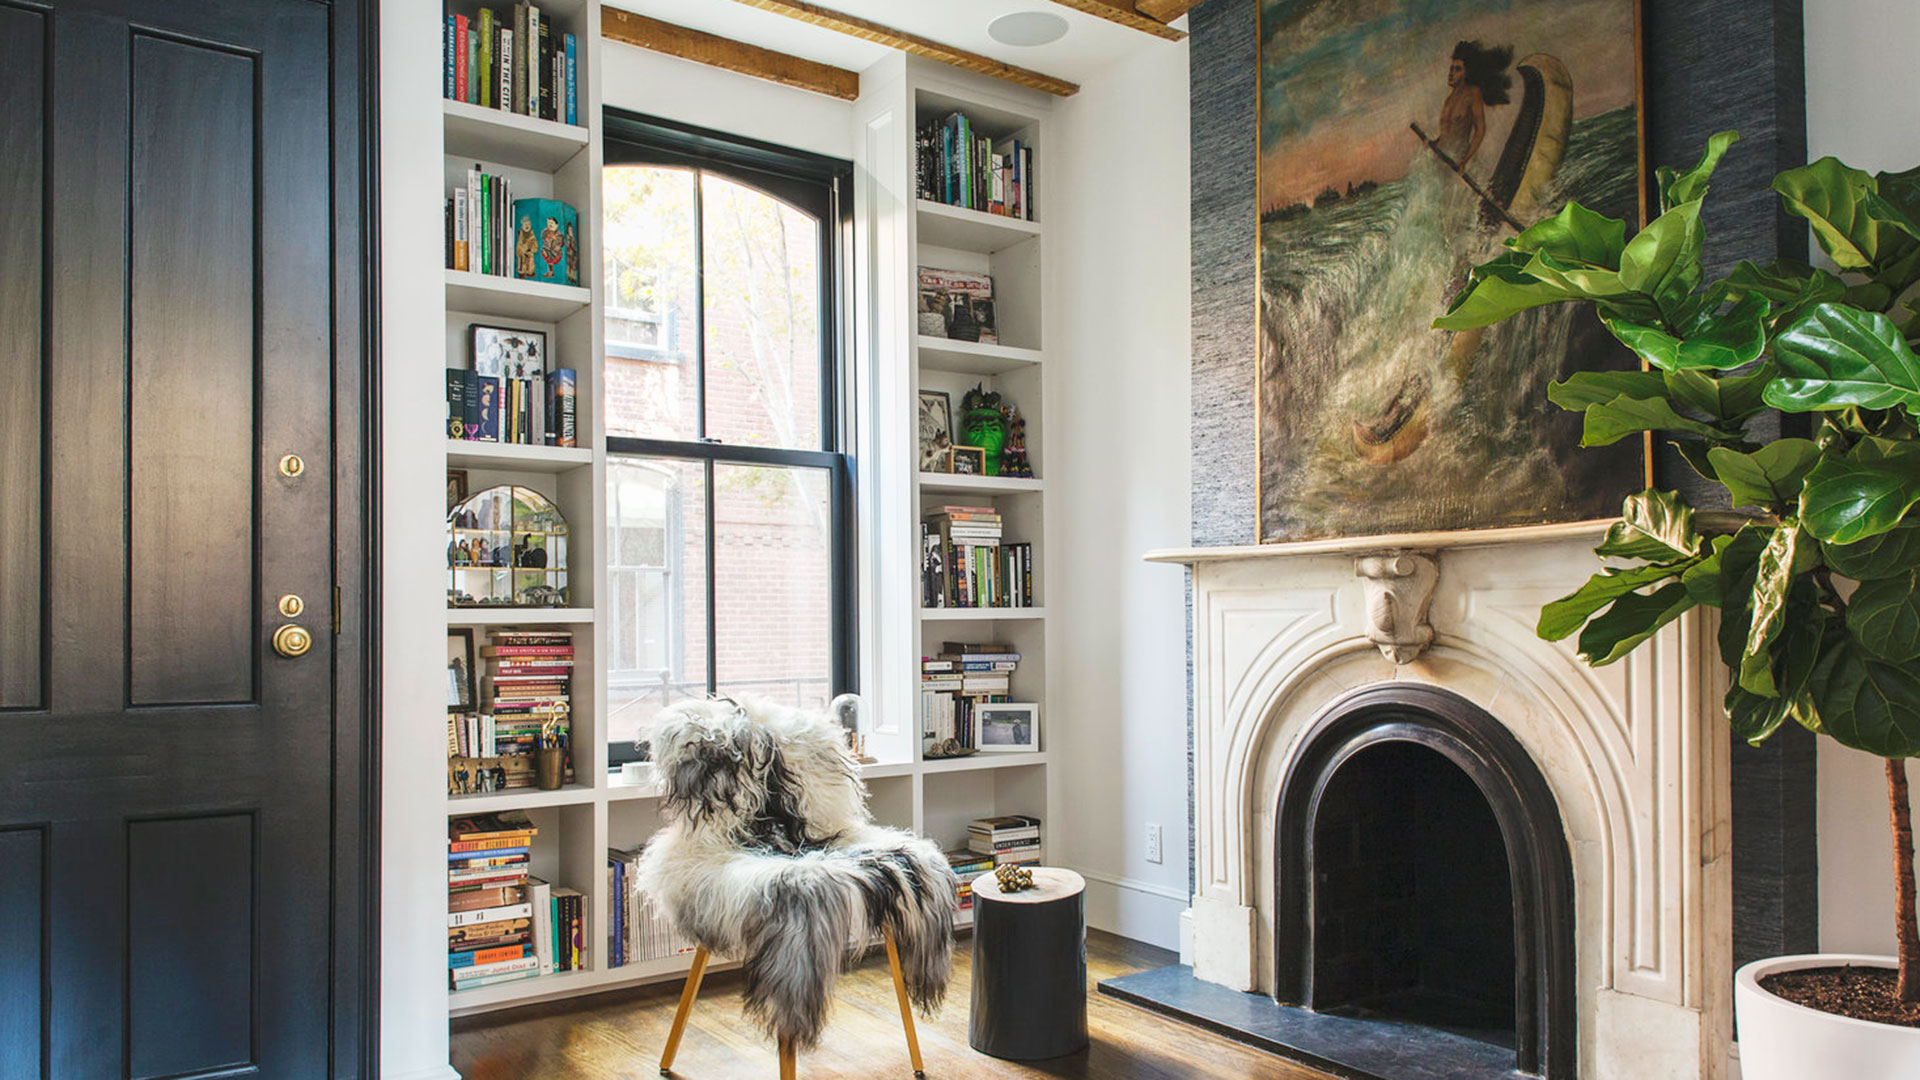 Cozy Den with Books